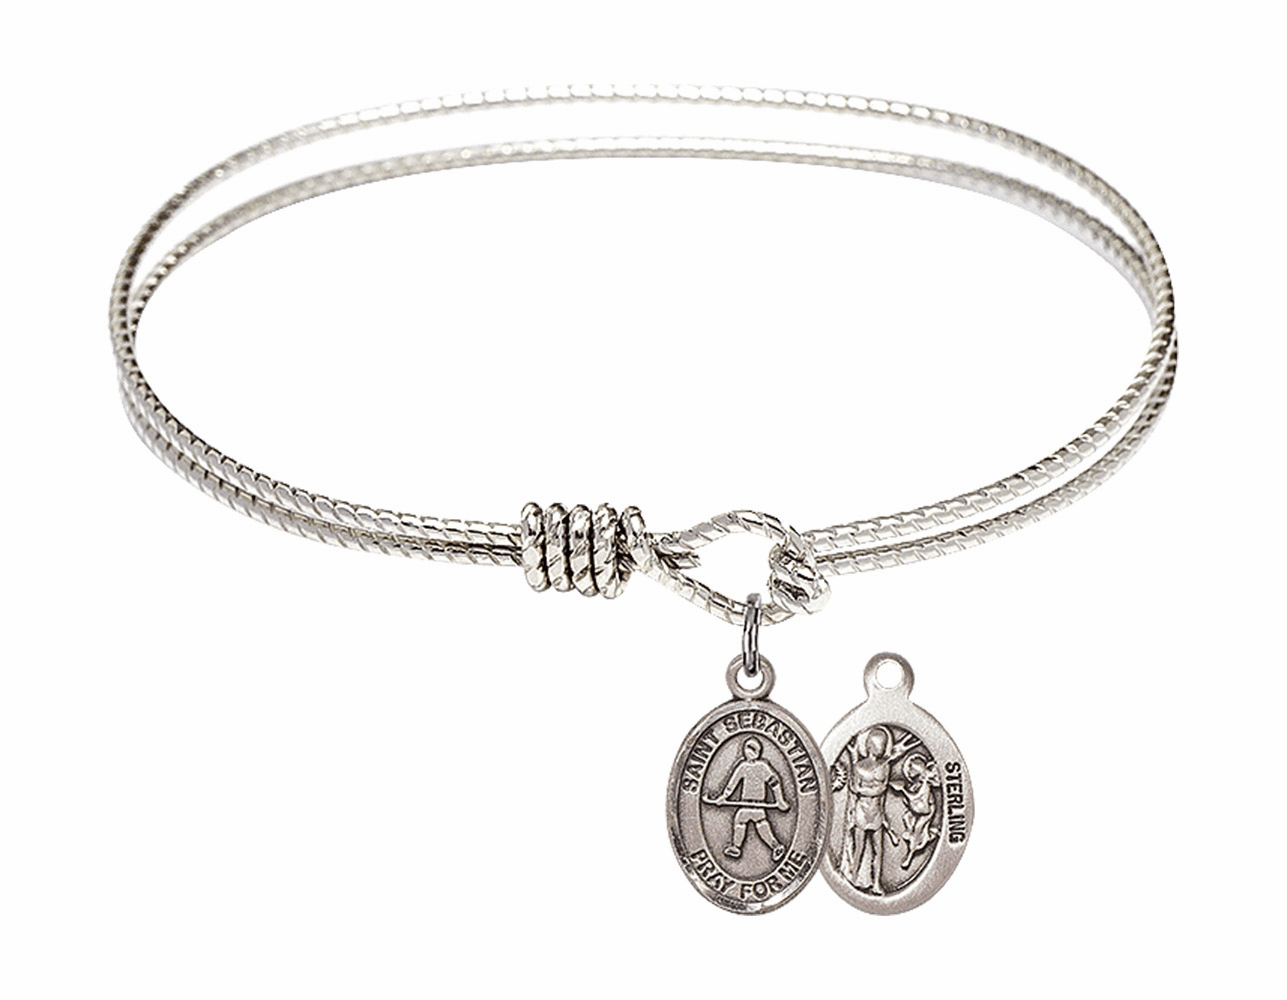 Twist Round Eye Hook St Sebastian Hockey Bangle Charm Bracelet by Bliss